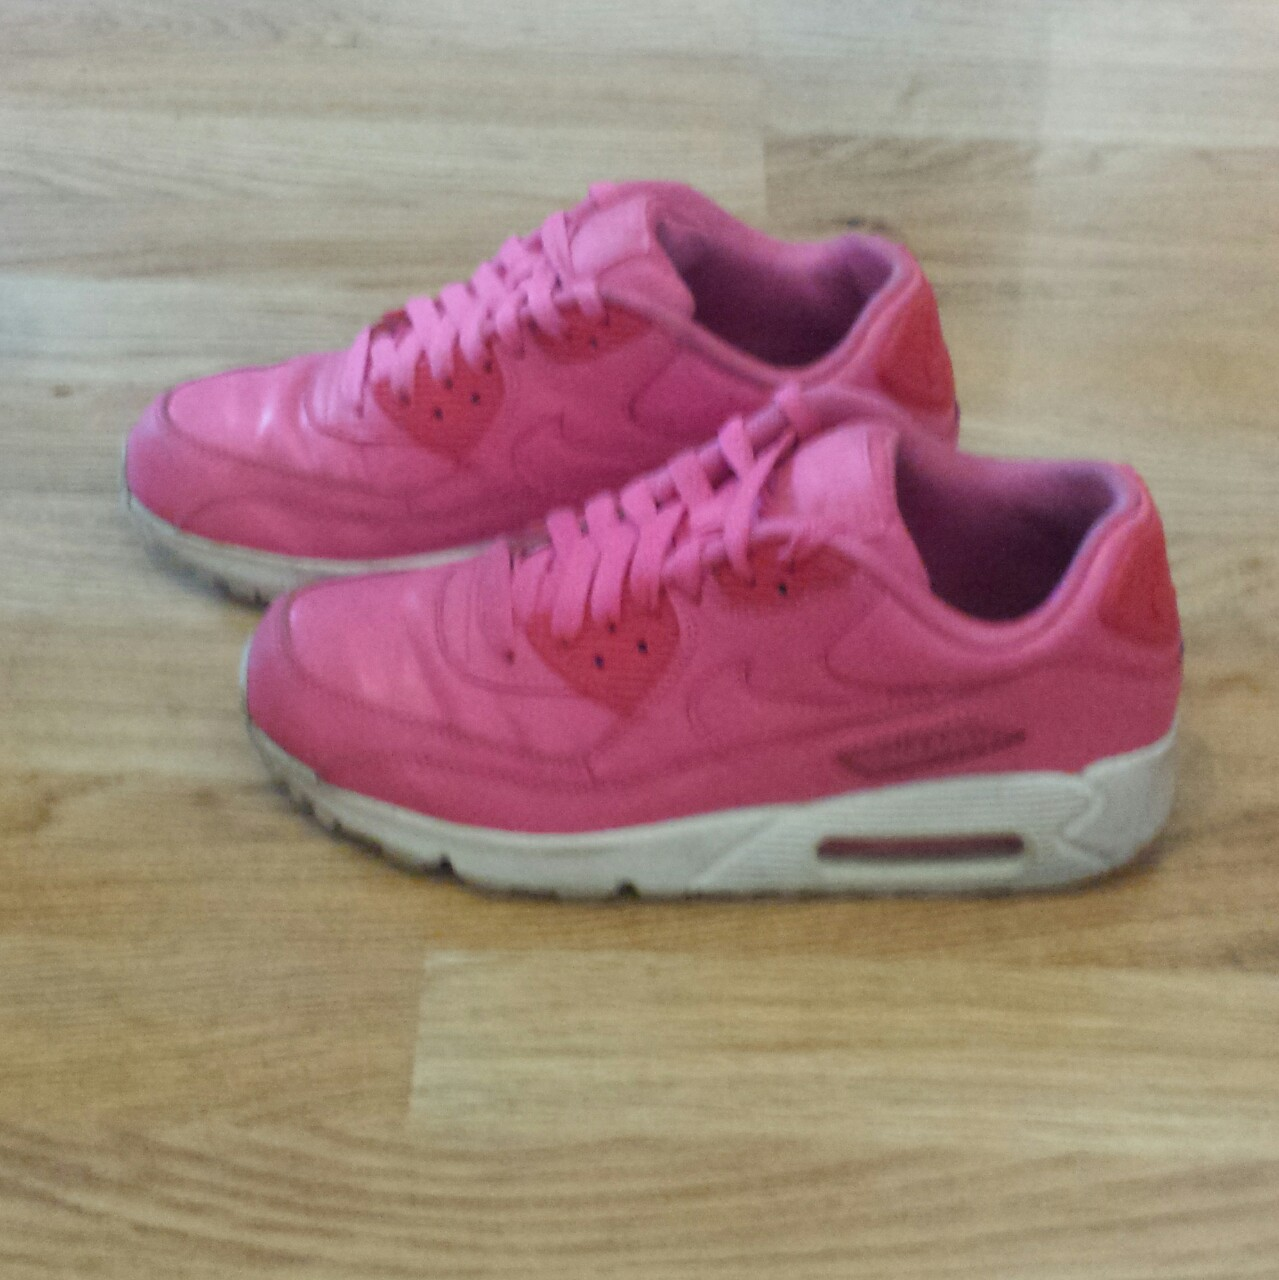 Neon pink Nike Air Max 90 trainers. Size 5 (EU 38). Depop